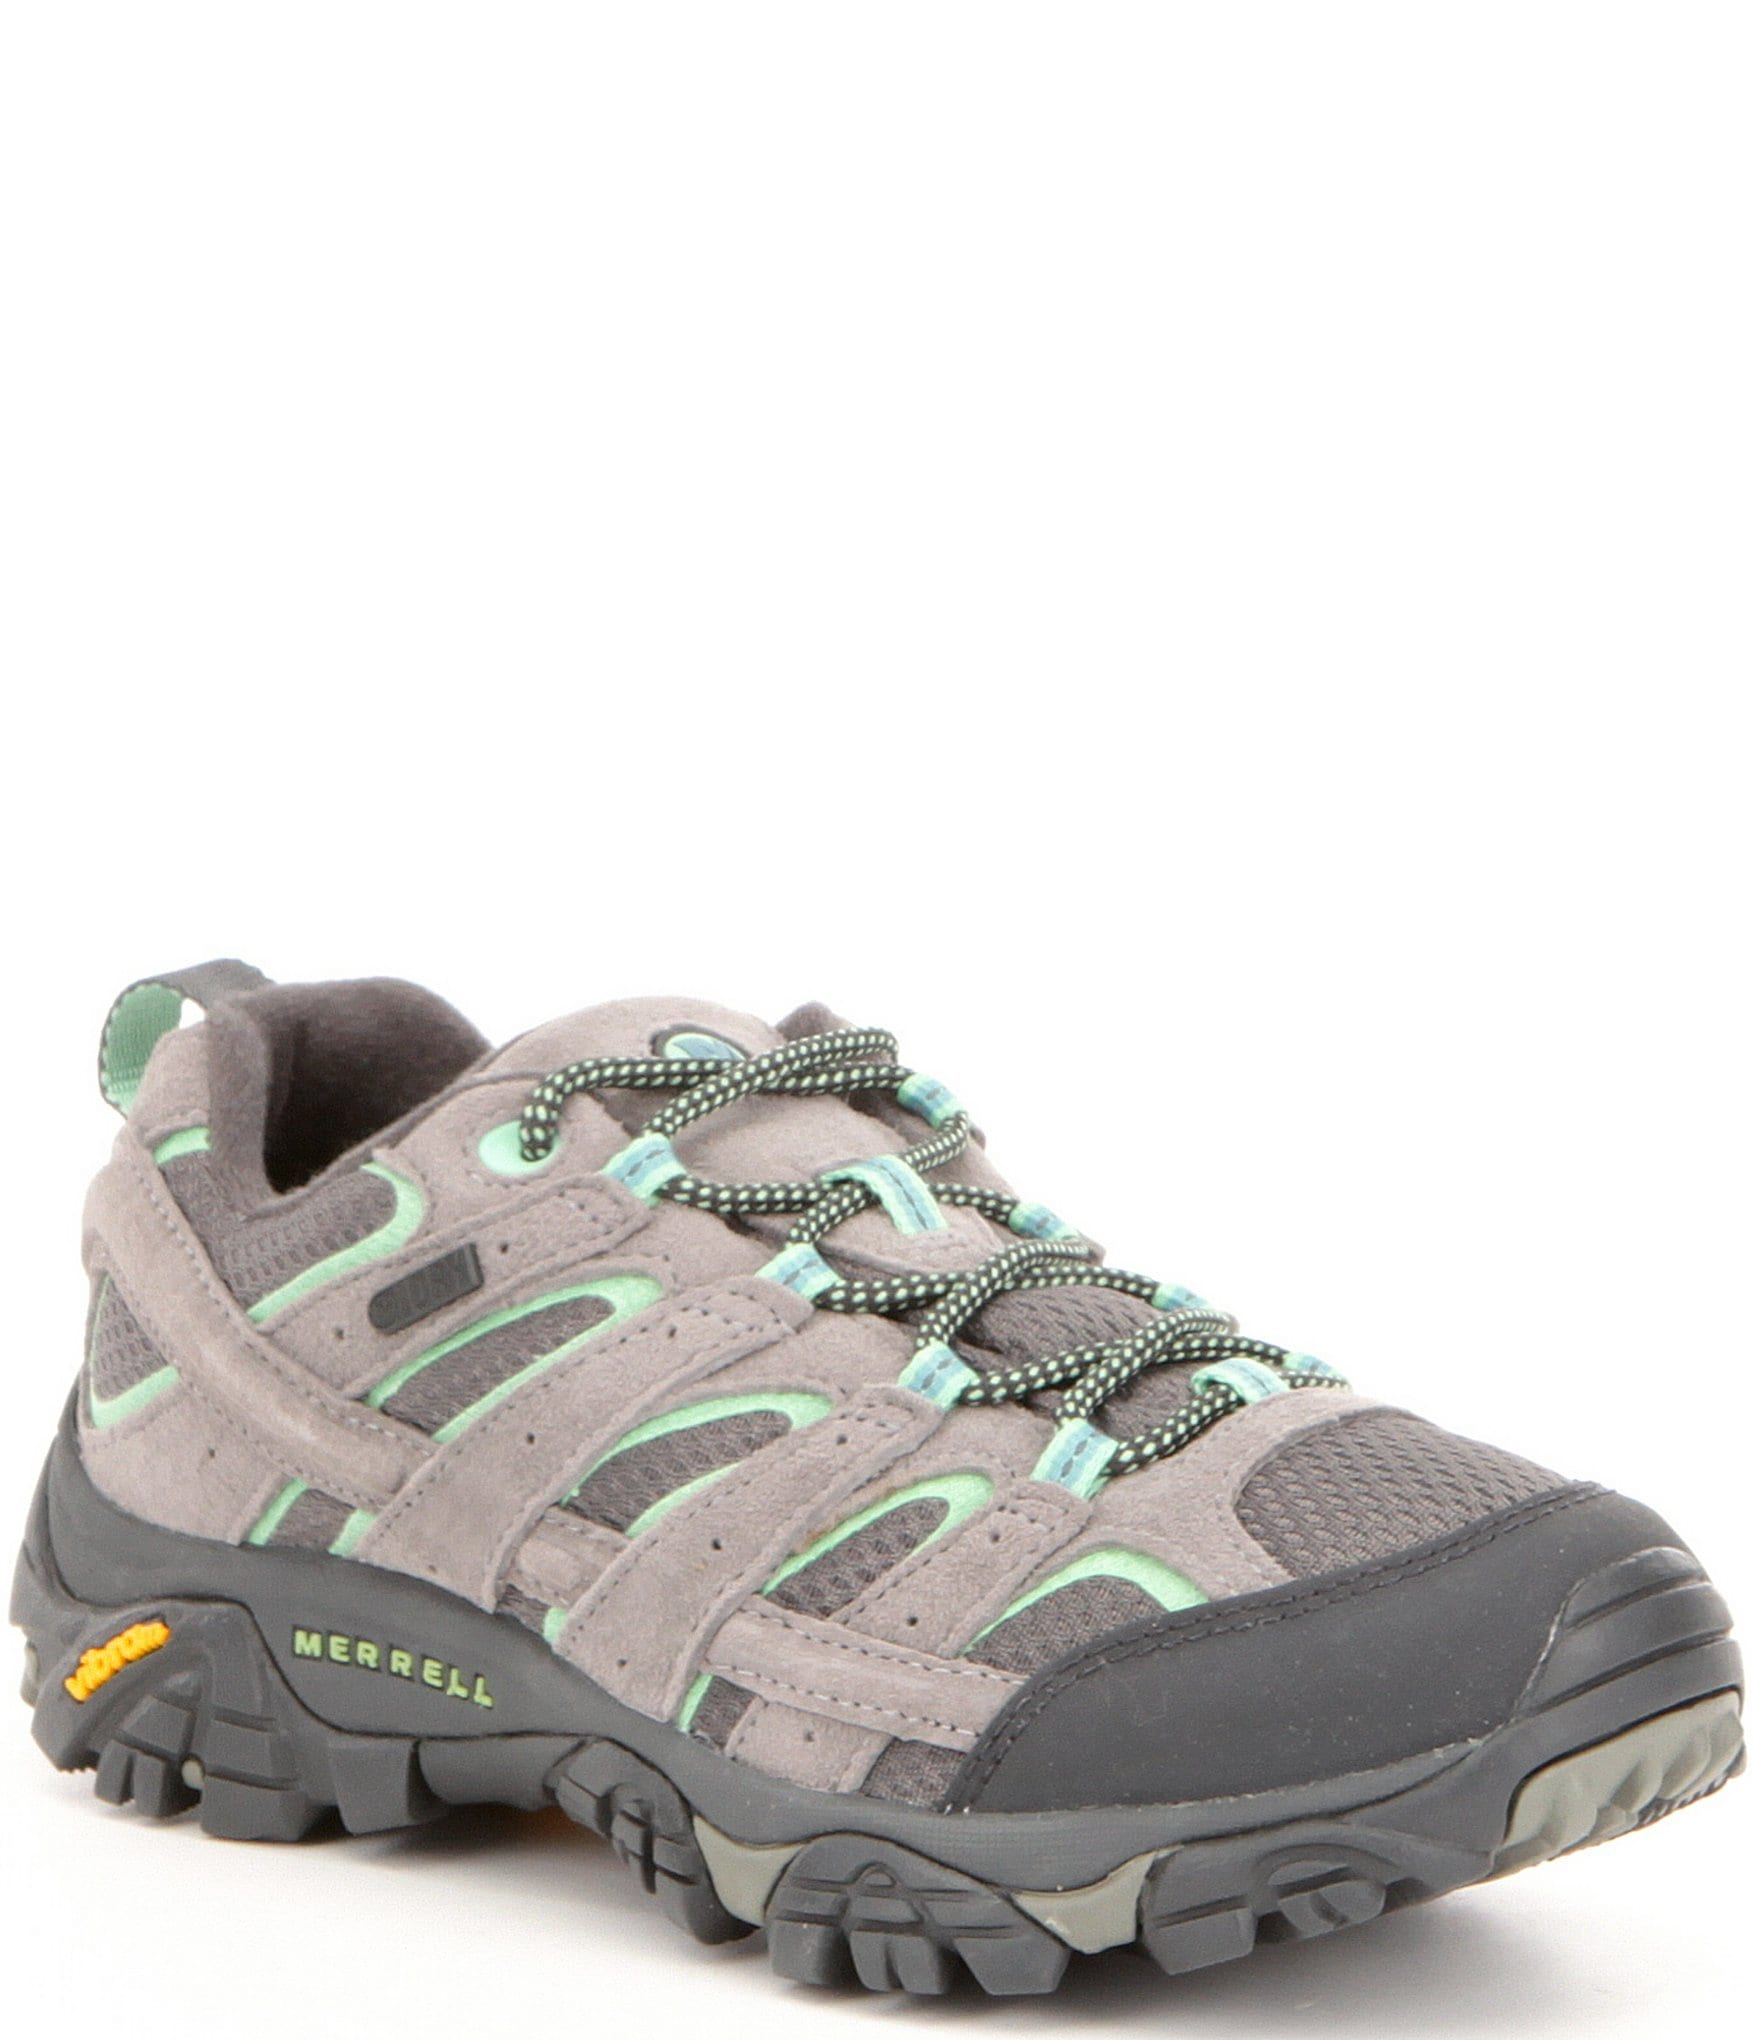 2 Waterproof Hiking Moab Mesh And Shoes Suede Merrell Women's hxtsQrdC